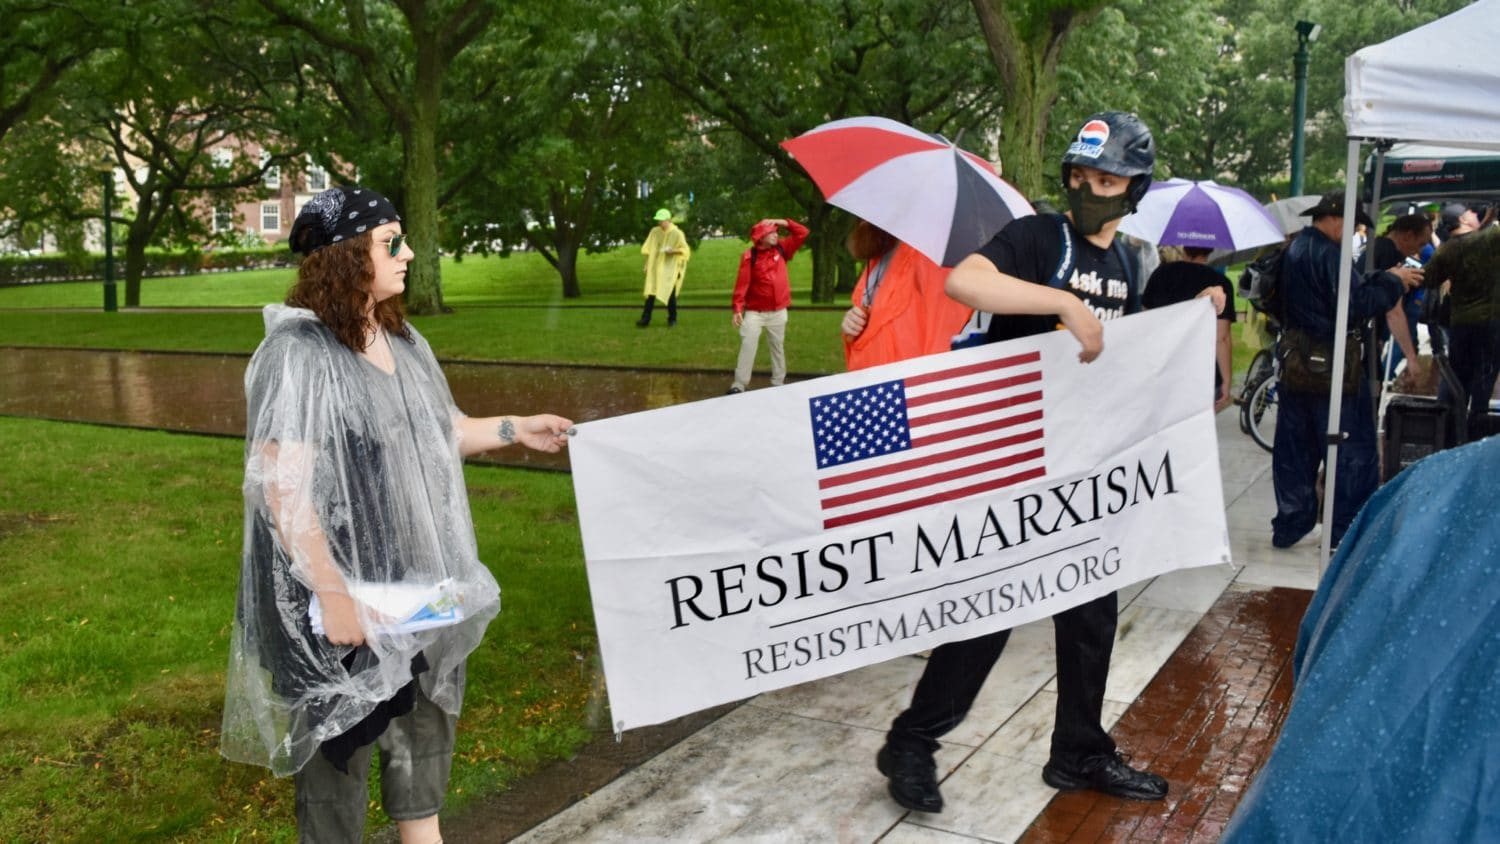 """Photo of a gathering of people in a park. Two white people in foreground, one in helmet and face mask, hold up a banner with United States flag and the text """"Resist Marxism, resistmarxism.org."""""""